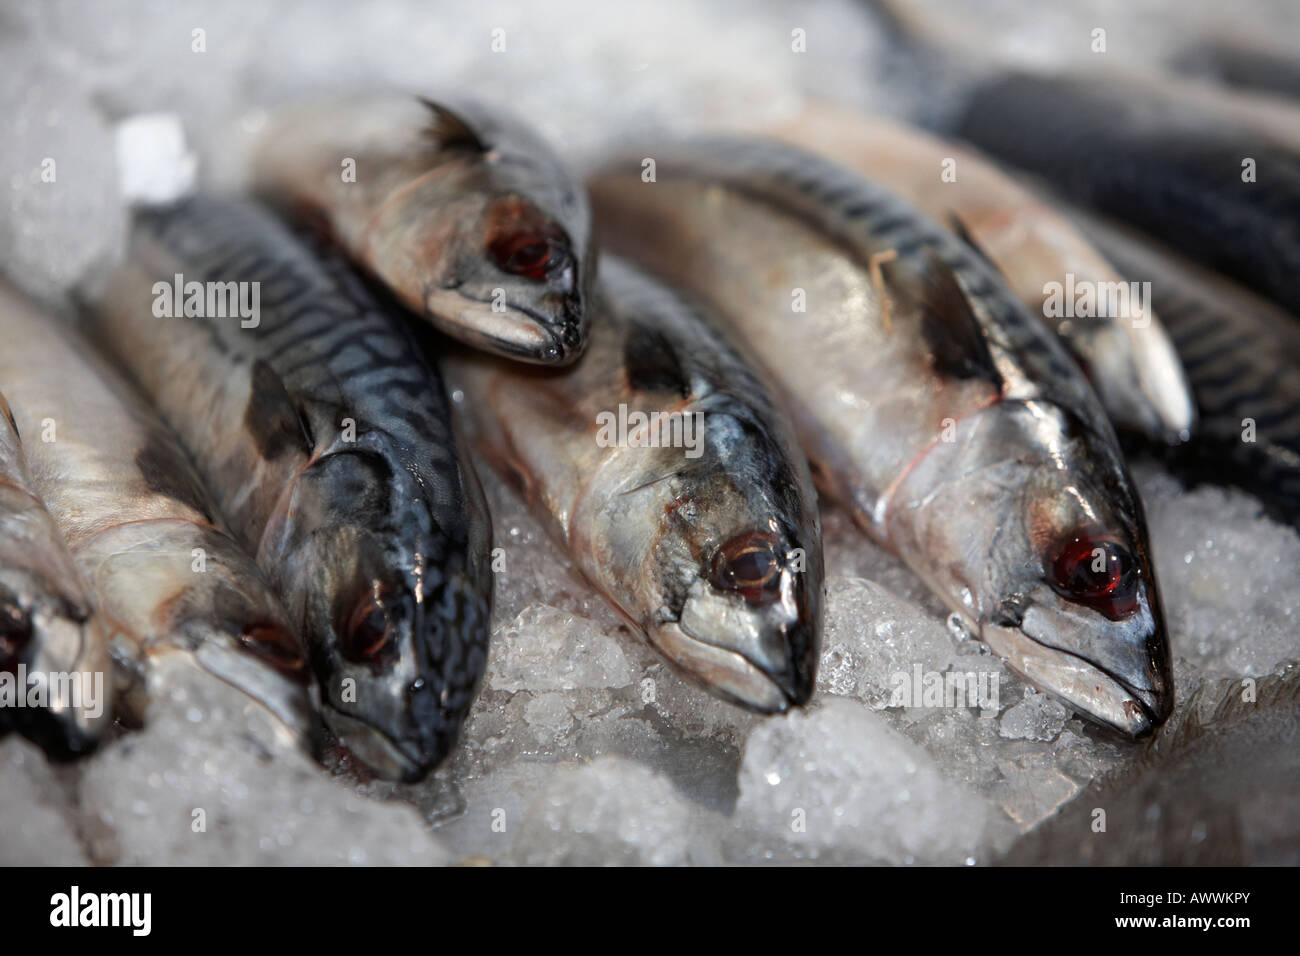 row of mackerel on a bed of ice on a fishmongers fresh fish stall at an indoor market - Stock Image